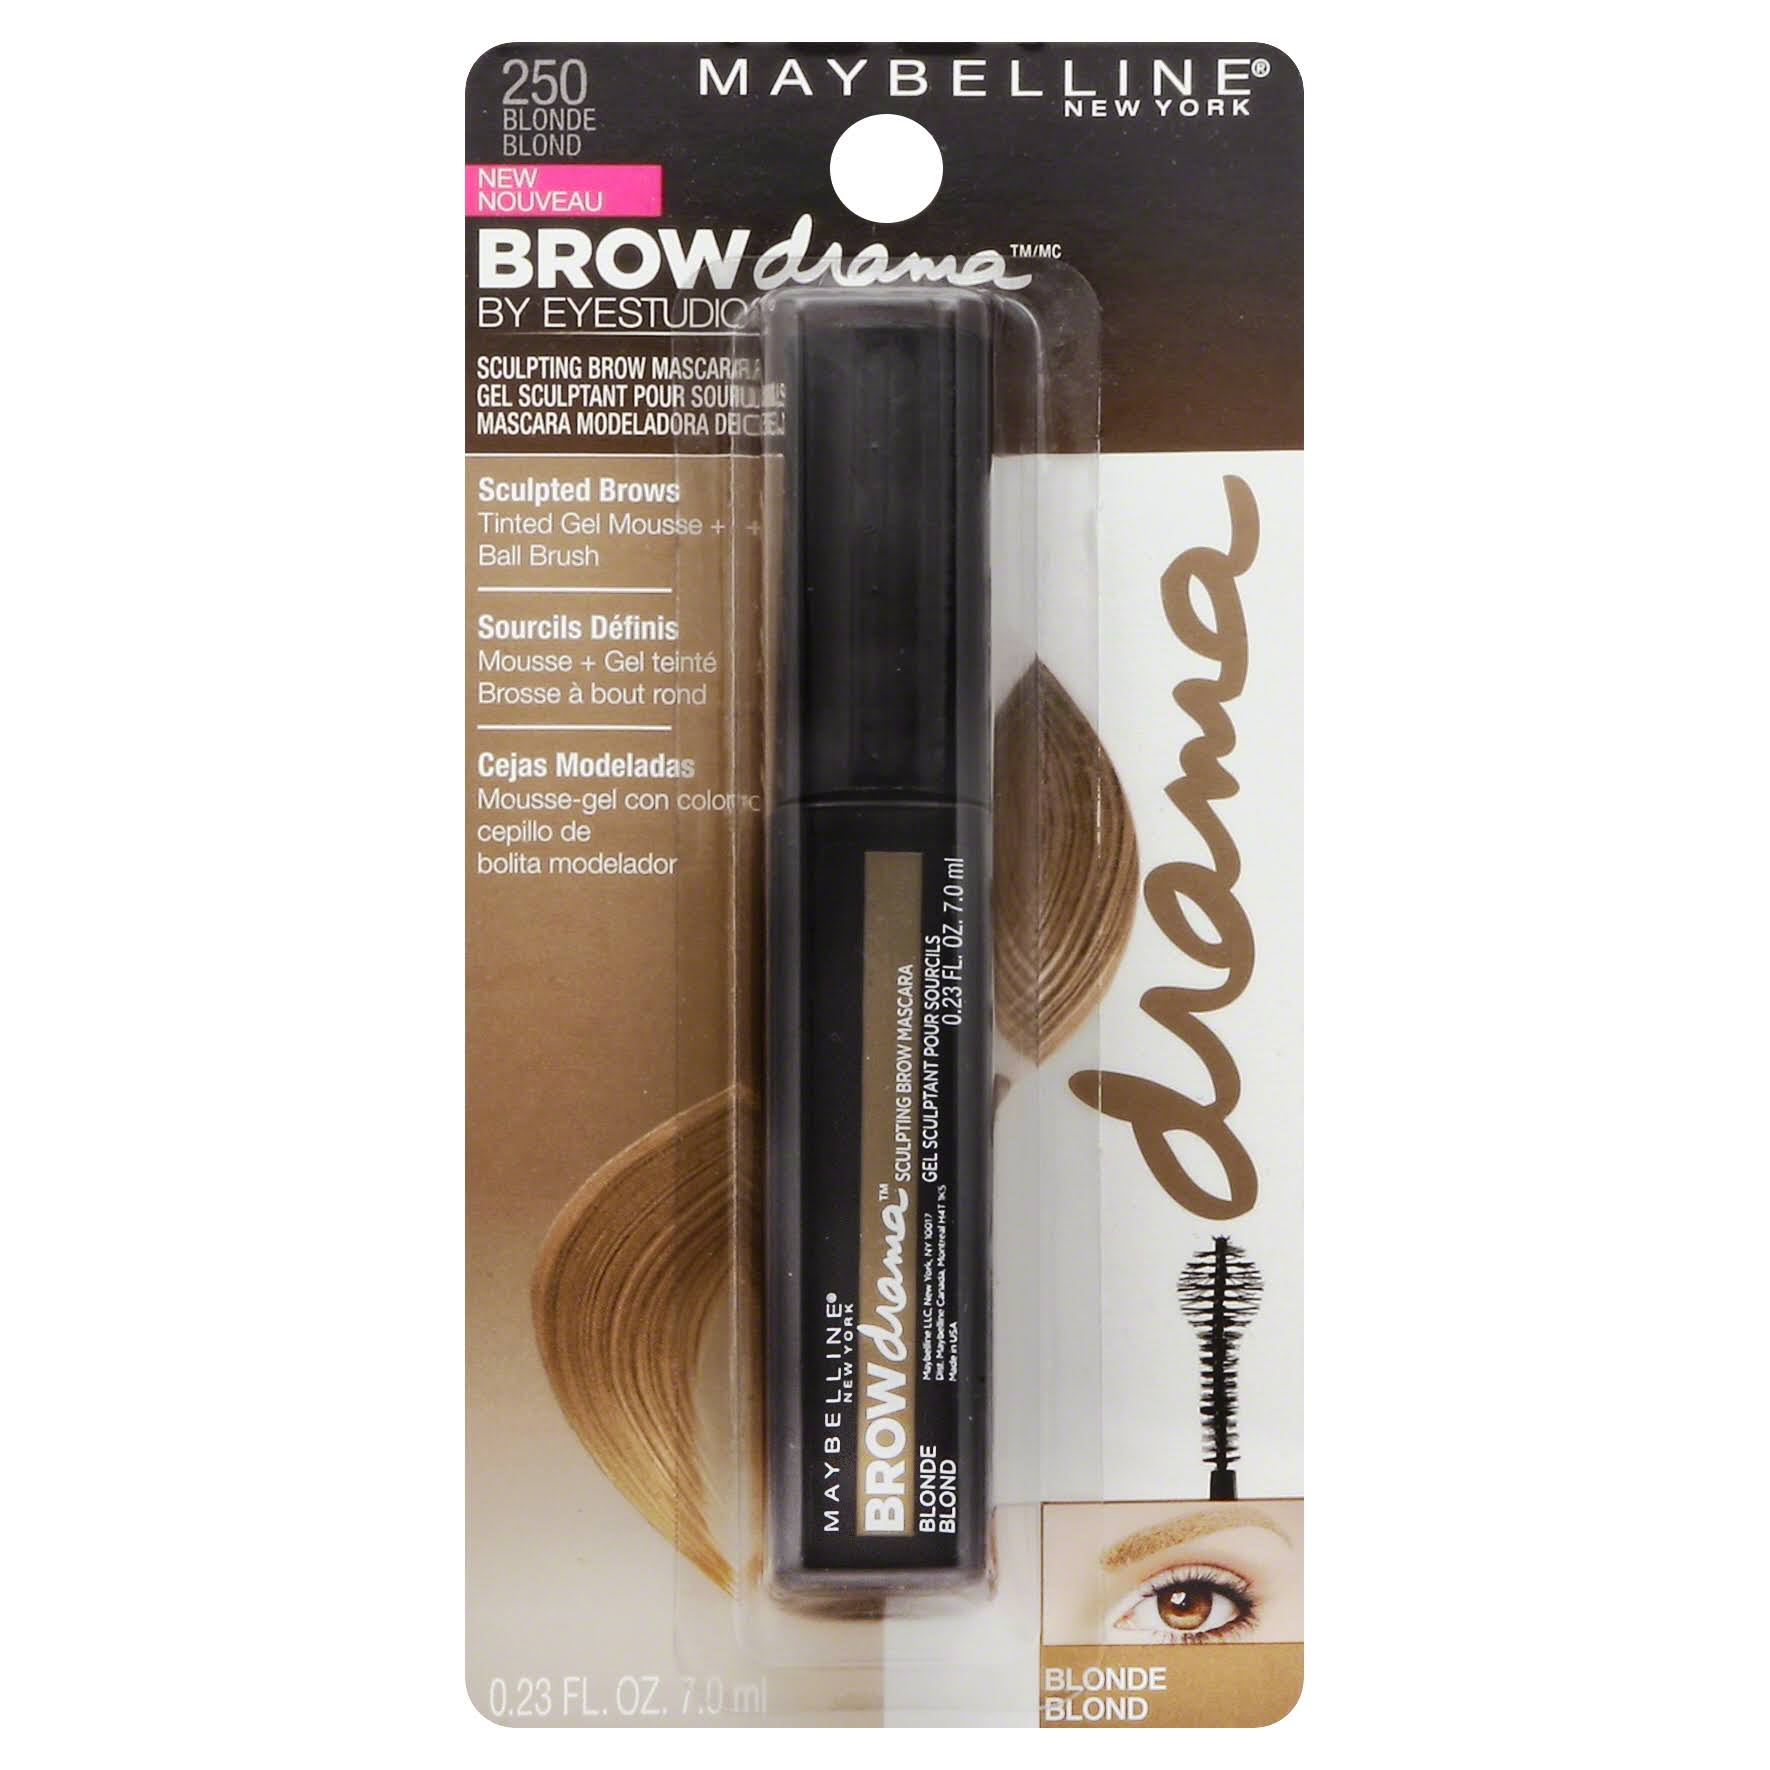 Maybelline Eye Studio Brow Drama Sculpting Mascara - Blonde 250, 0.23oz